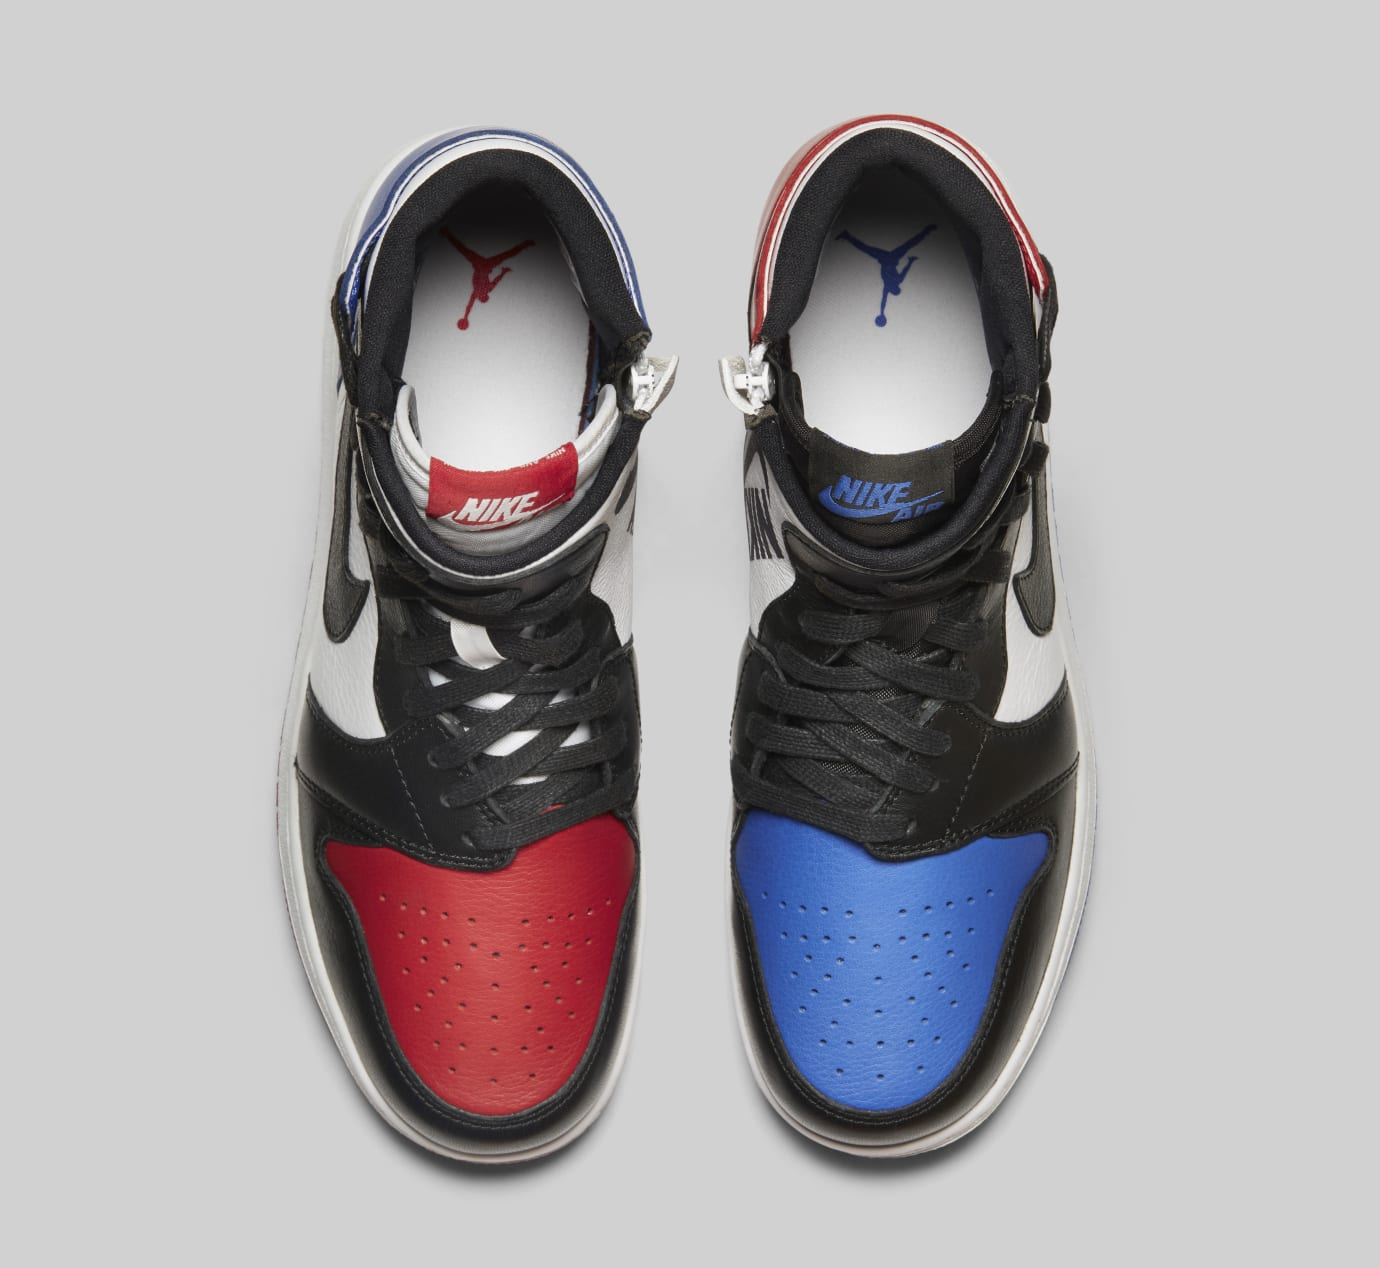 Air Jordan 1 Rebel 'Top 3' AT4151-001 (Top)